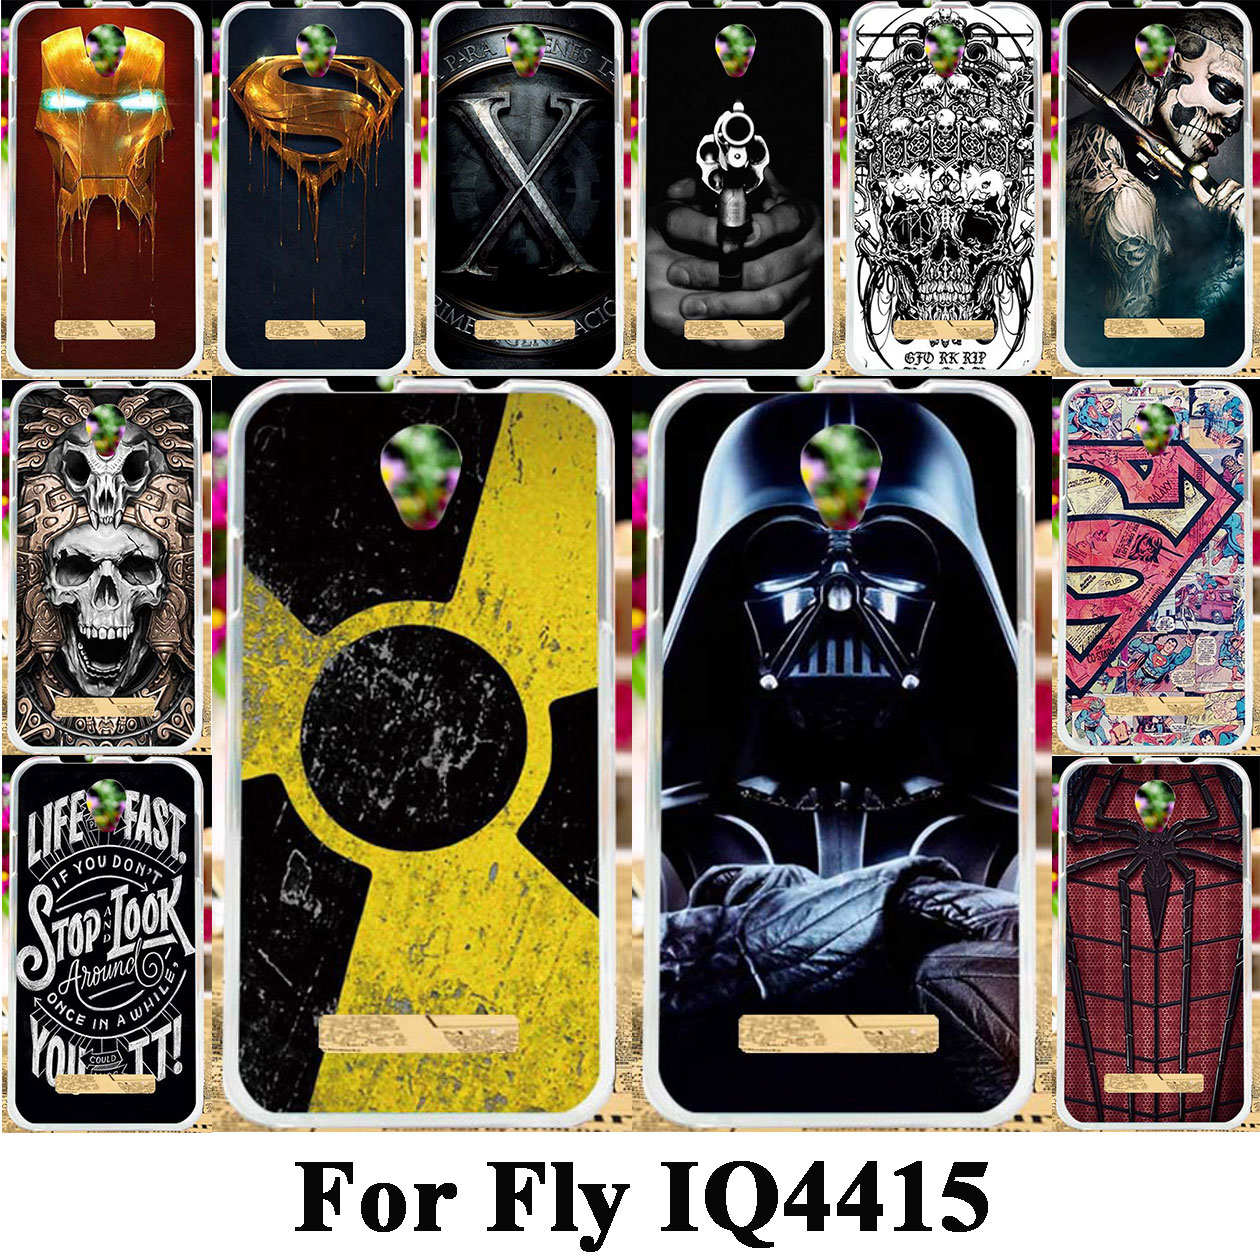 Taoyunxi Silicone Phone Case For Fly IQ4415 quad Era Style 3 IQ 4415 4.5 inch Bag Shell Cover Skin Flexible Covers Cases